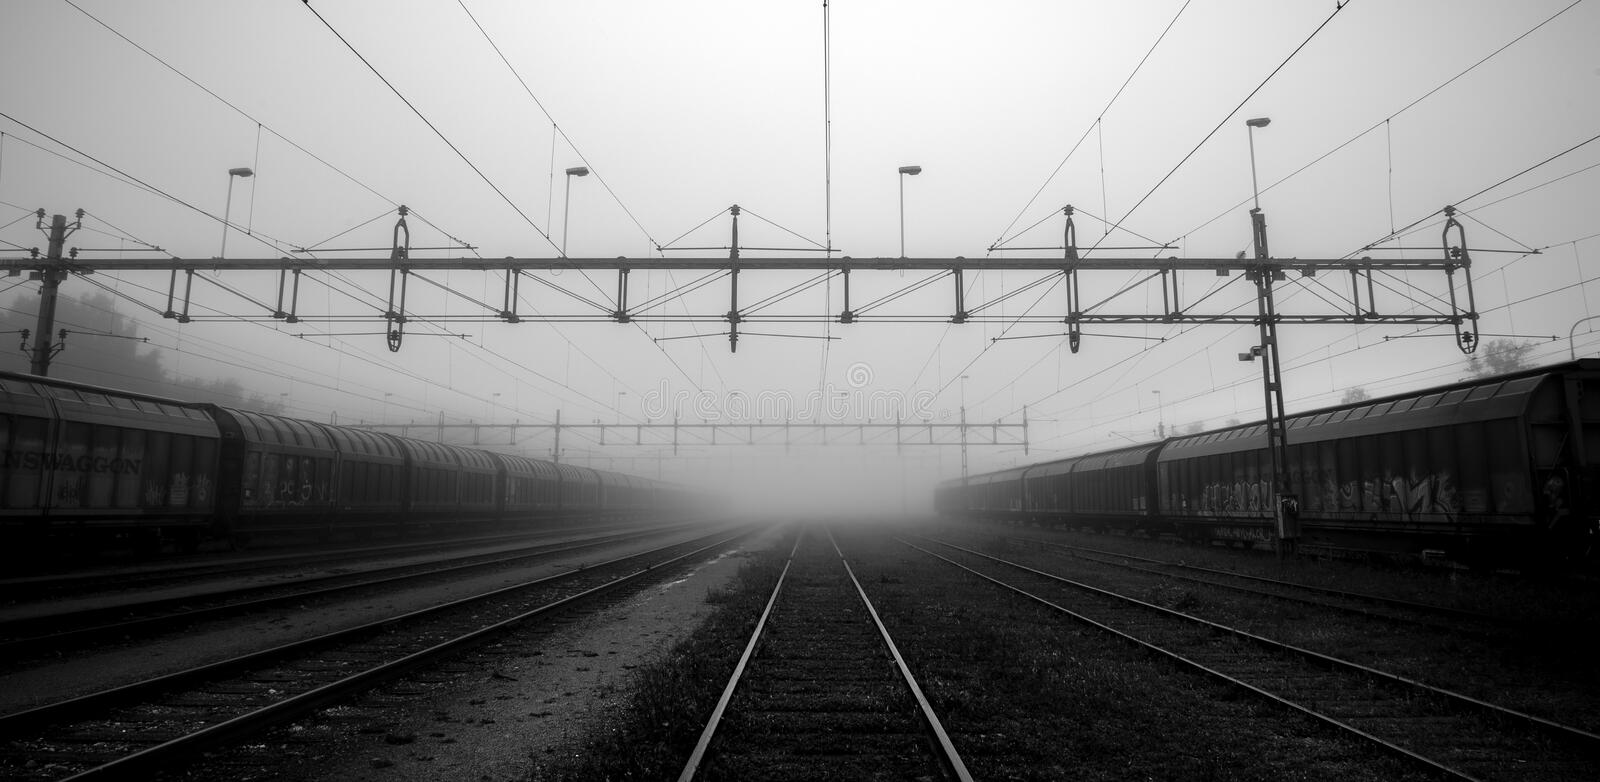 Mystical feel to the train tracks royalty free stock images